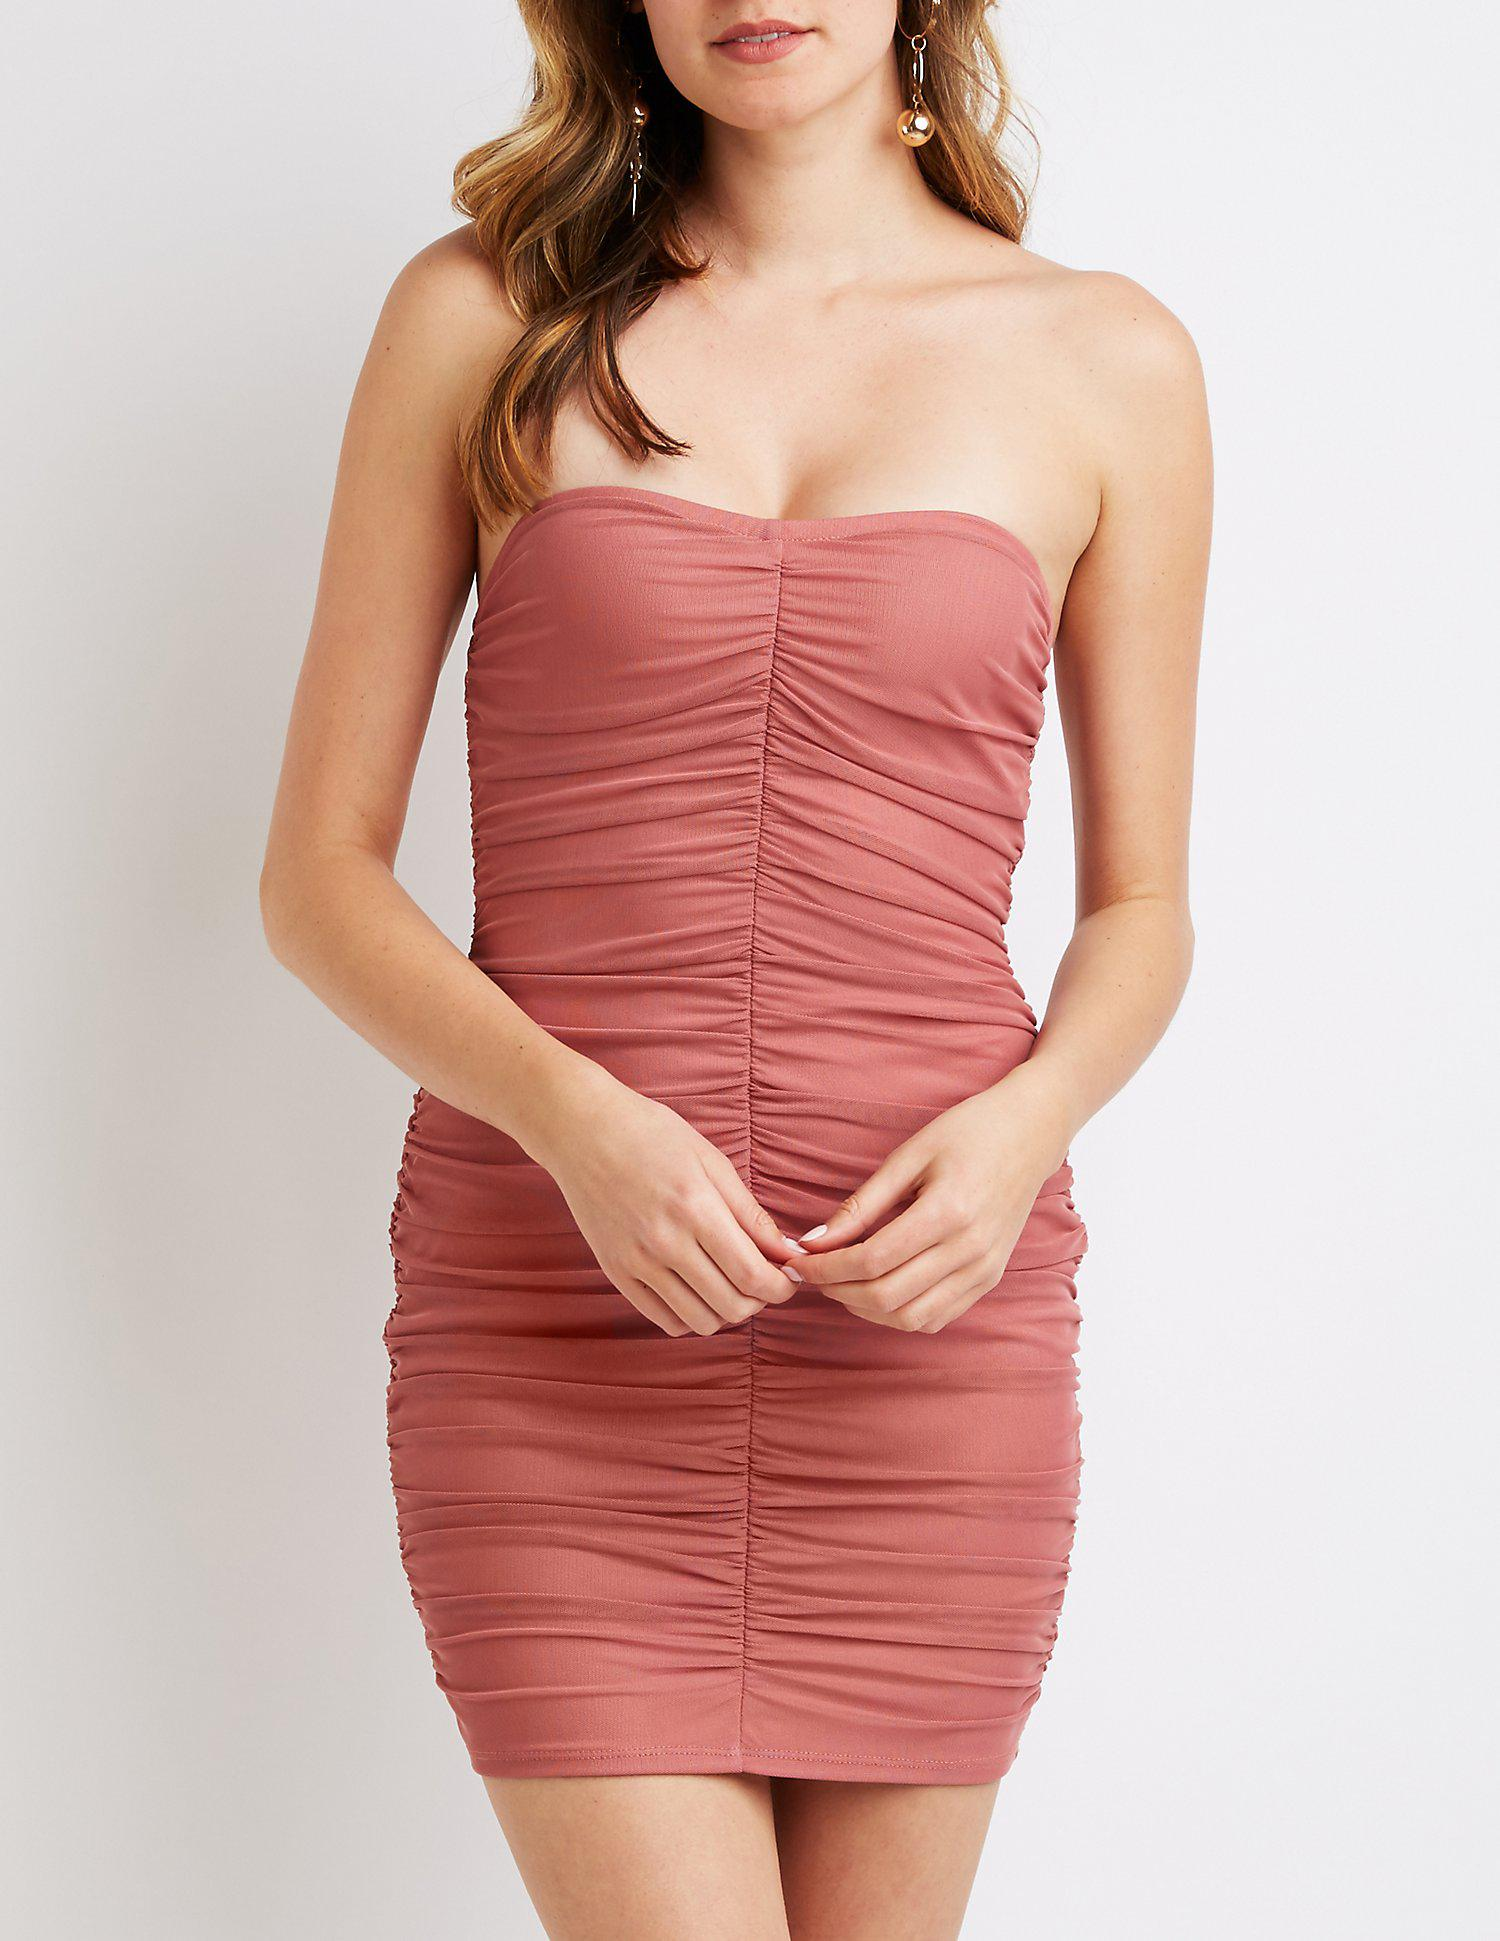 33417d280eae Gallery. Previously sold at: Charlotte Russe · Women's Bodycon Dresses ...